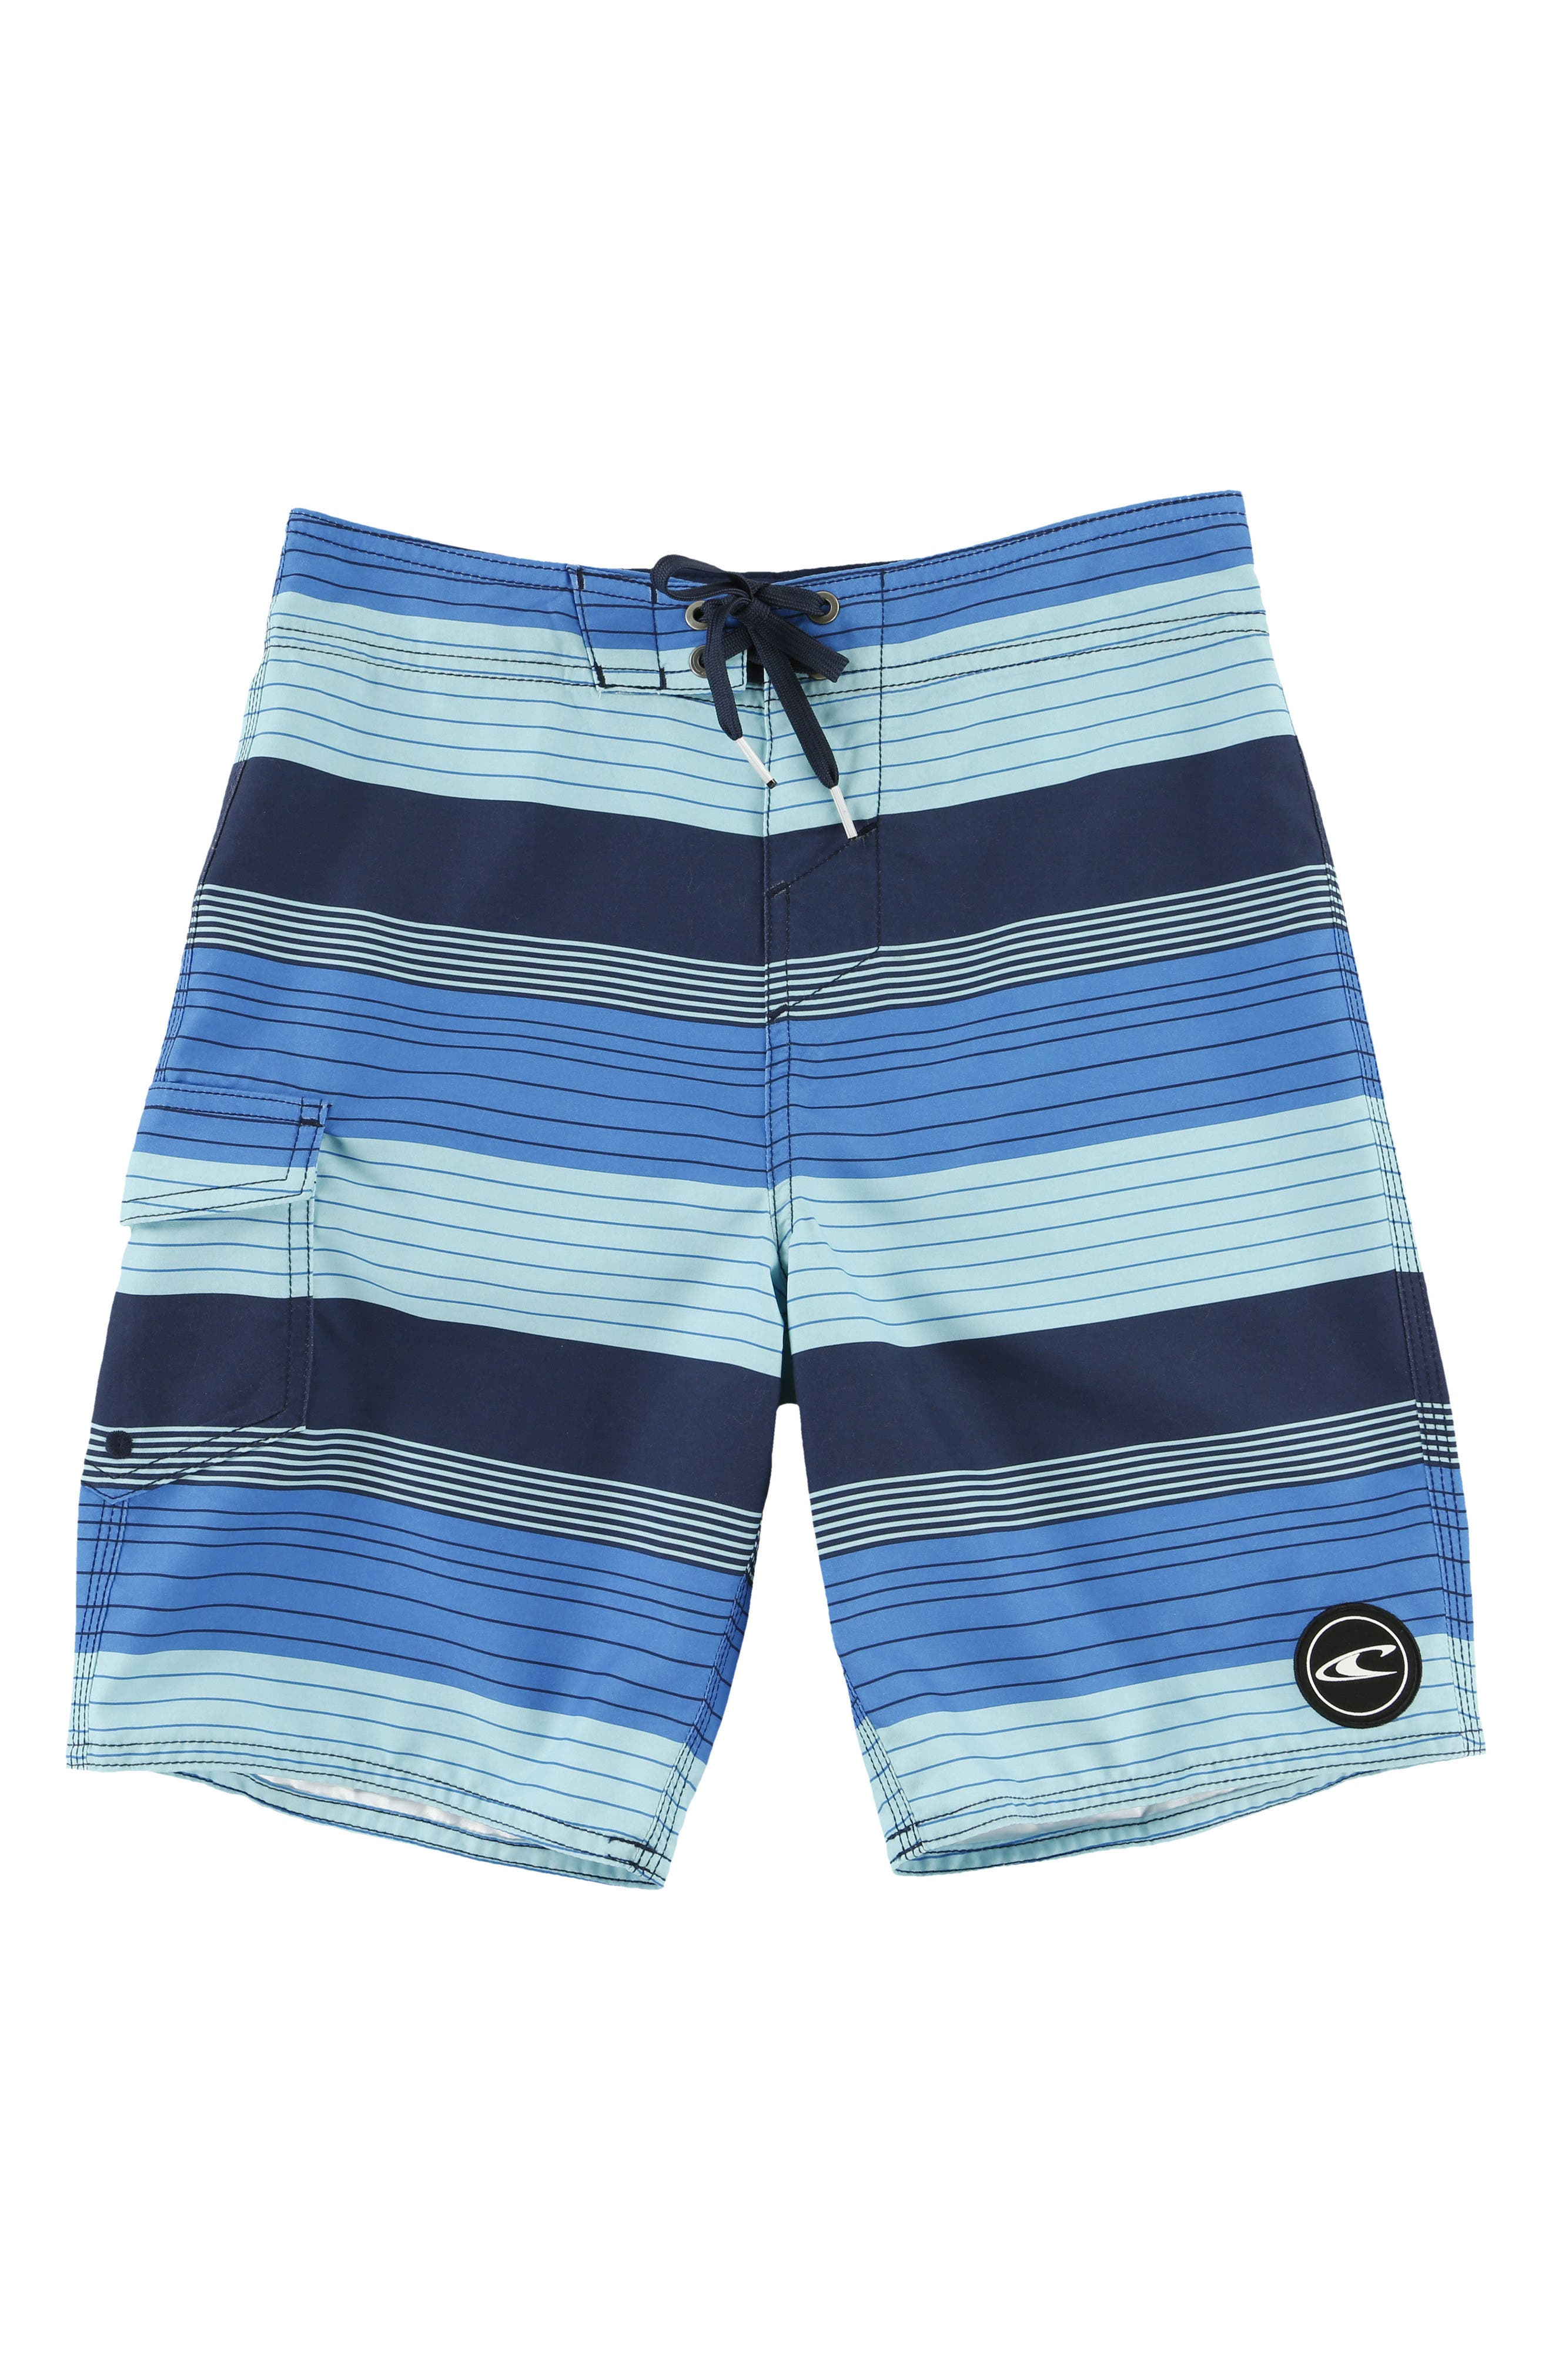 Main Image - O'Neill Santa Cruz Stripe Board Shorts (Big Boys)